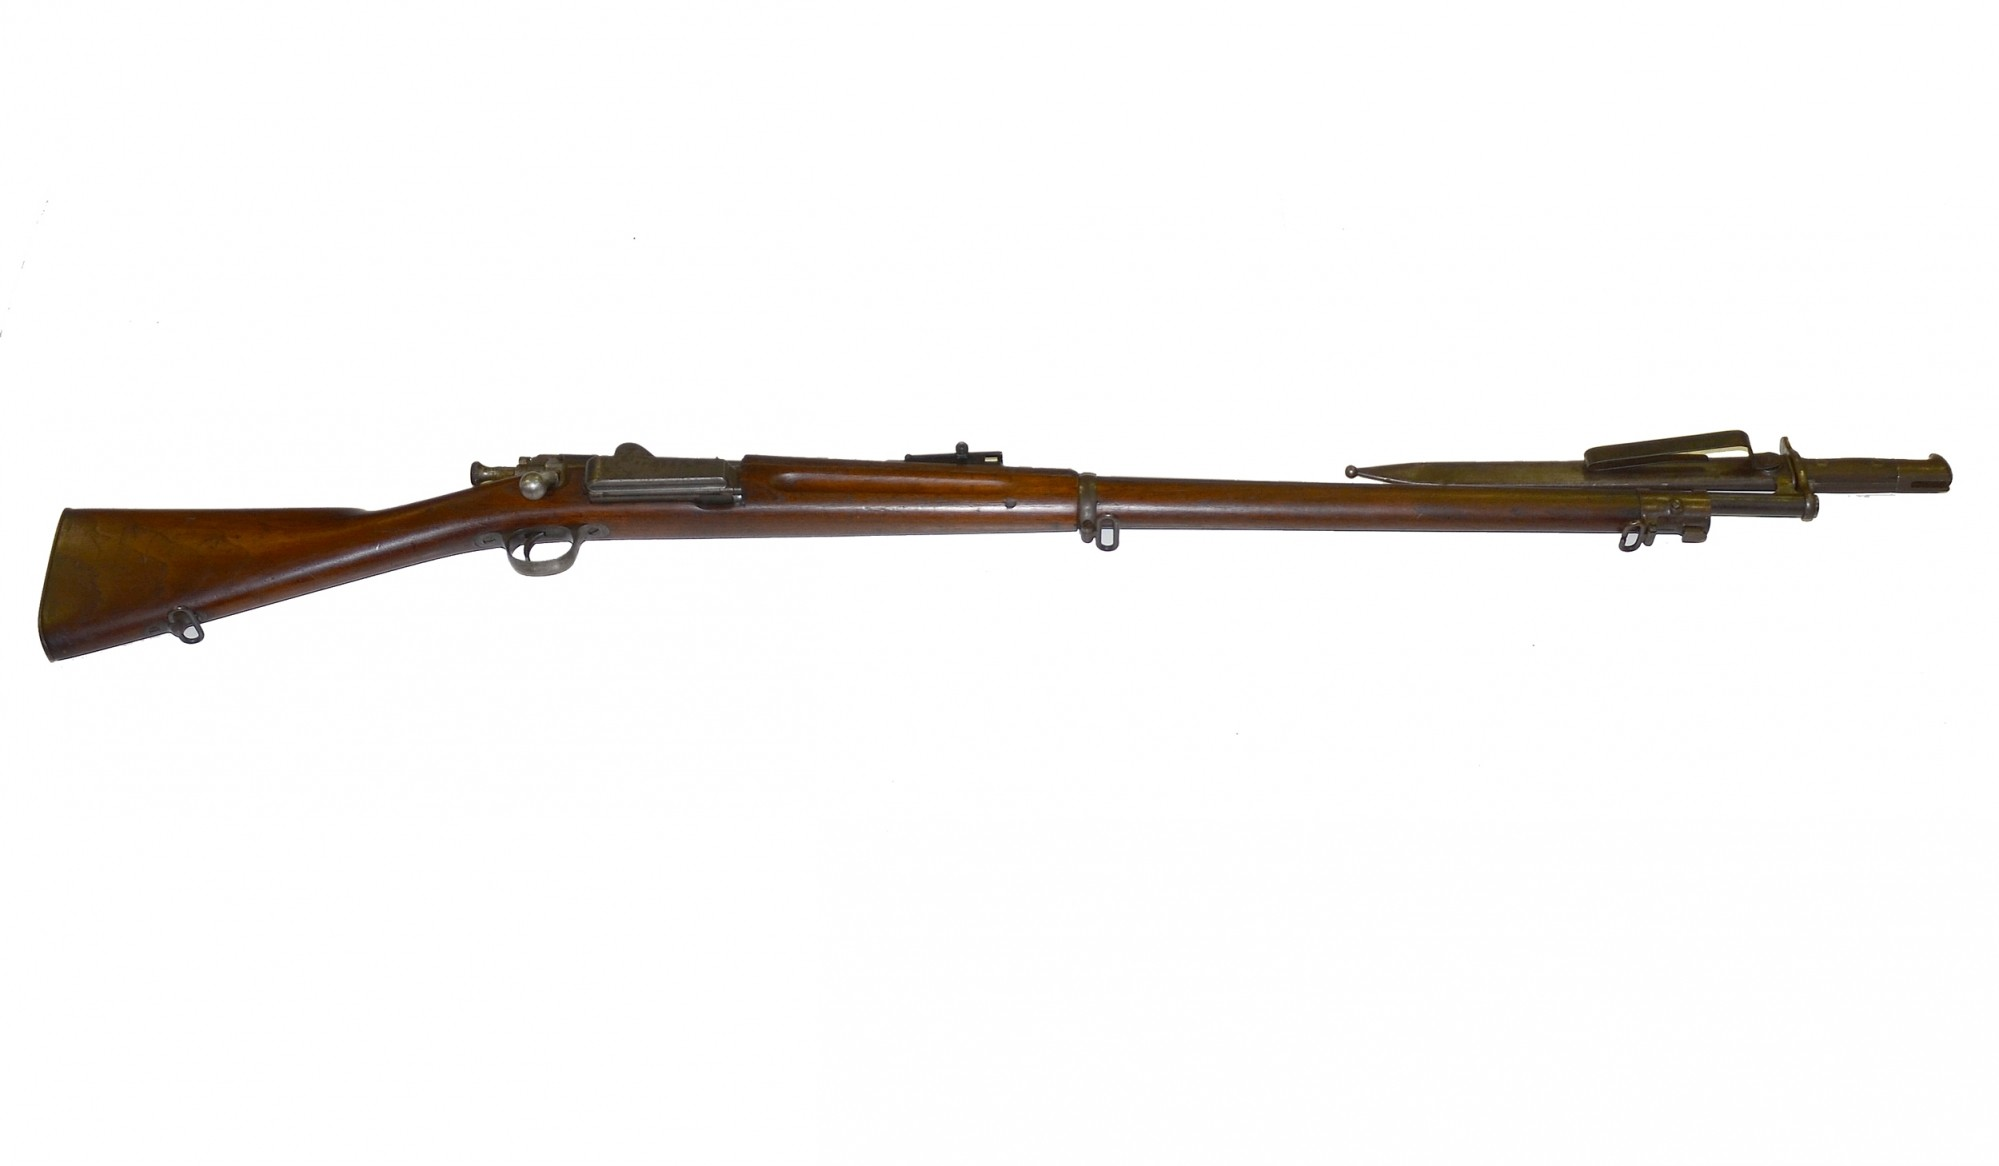 MODEL 1896 SPRINGFIELD KRAG RIFLE WITH BAYONET